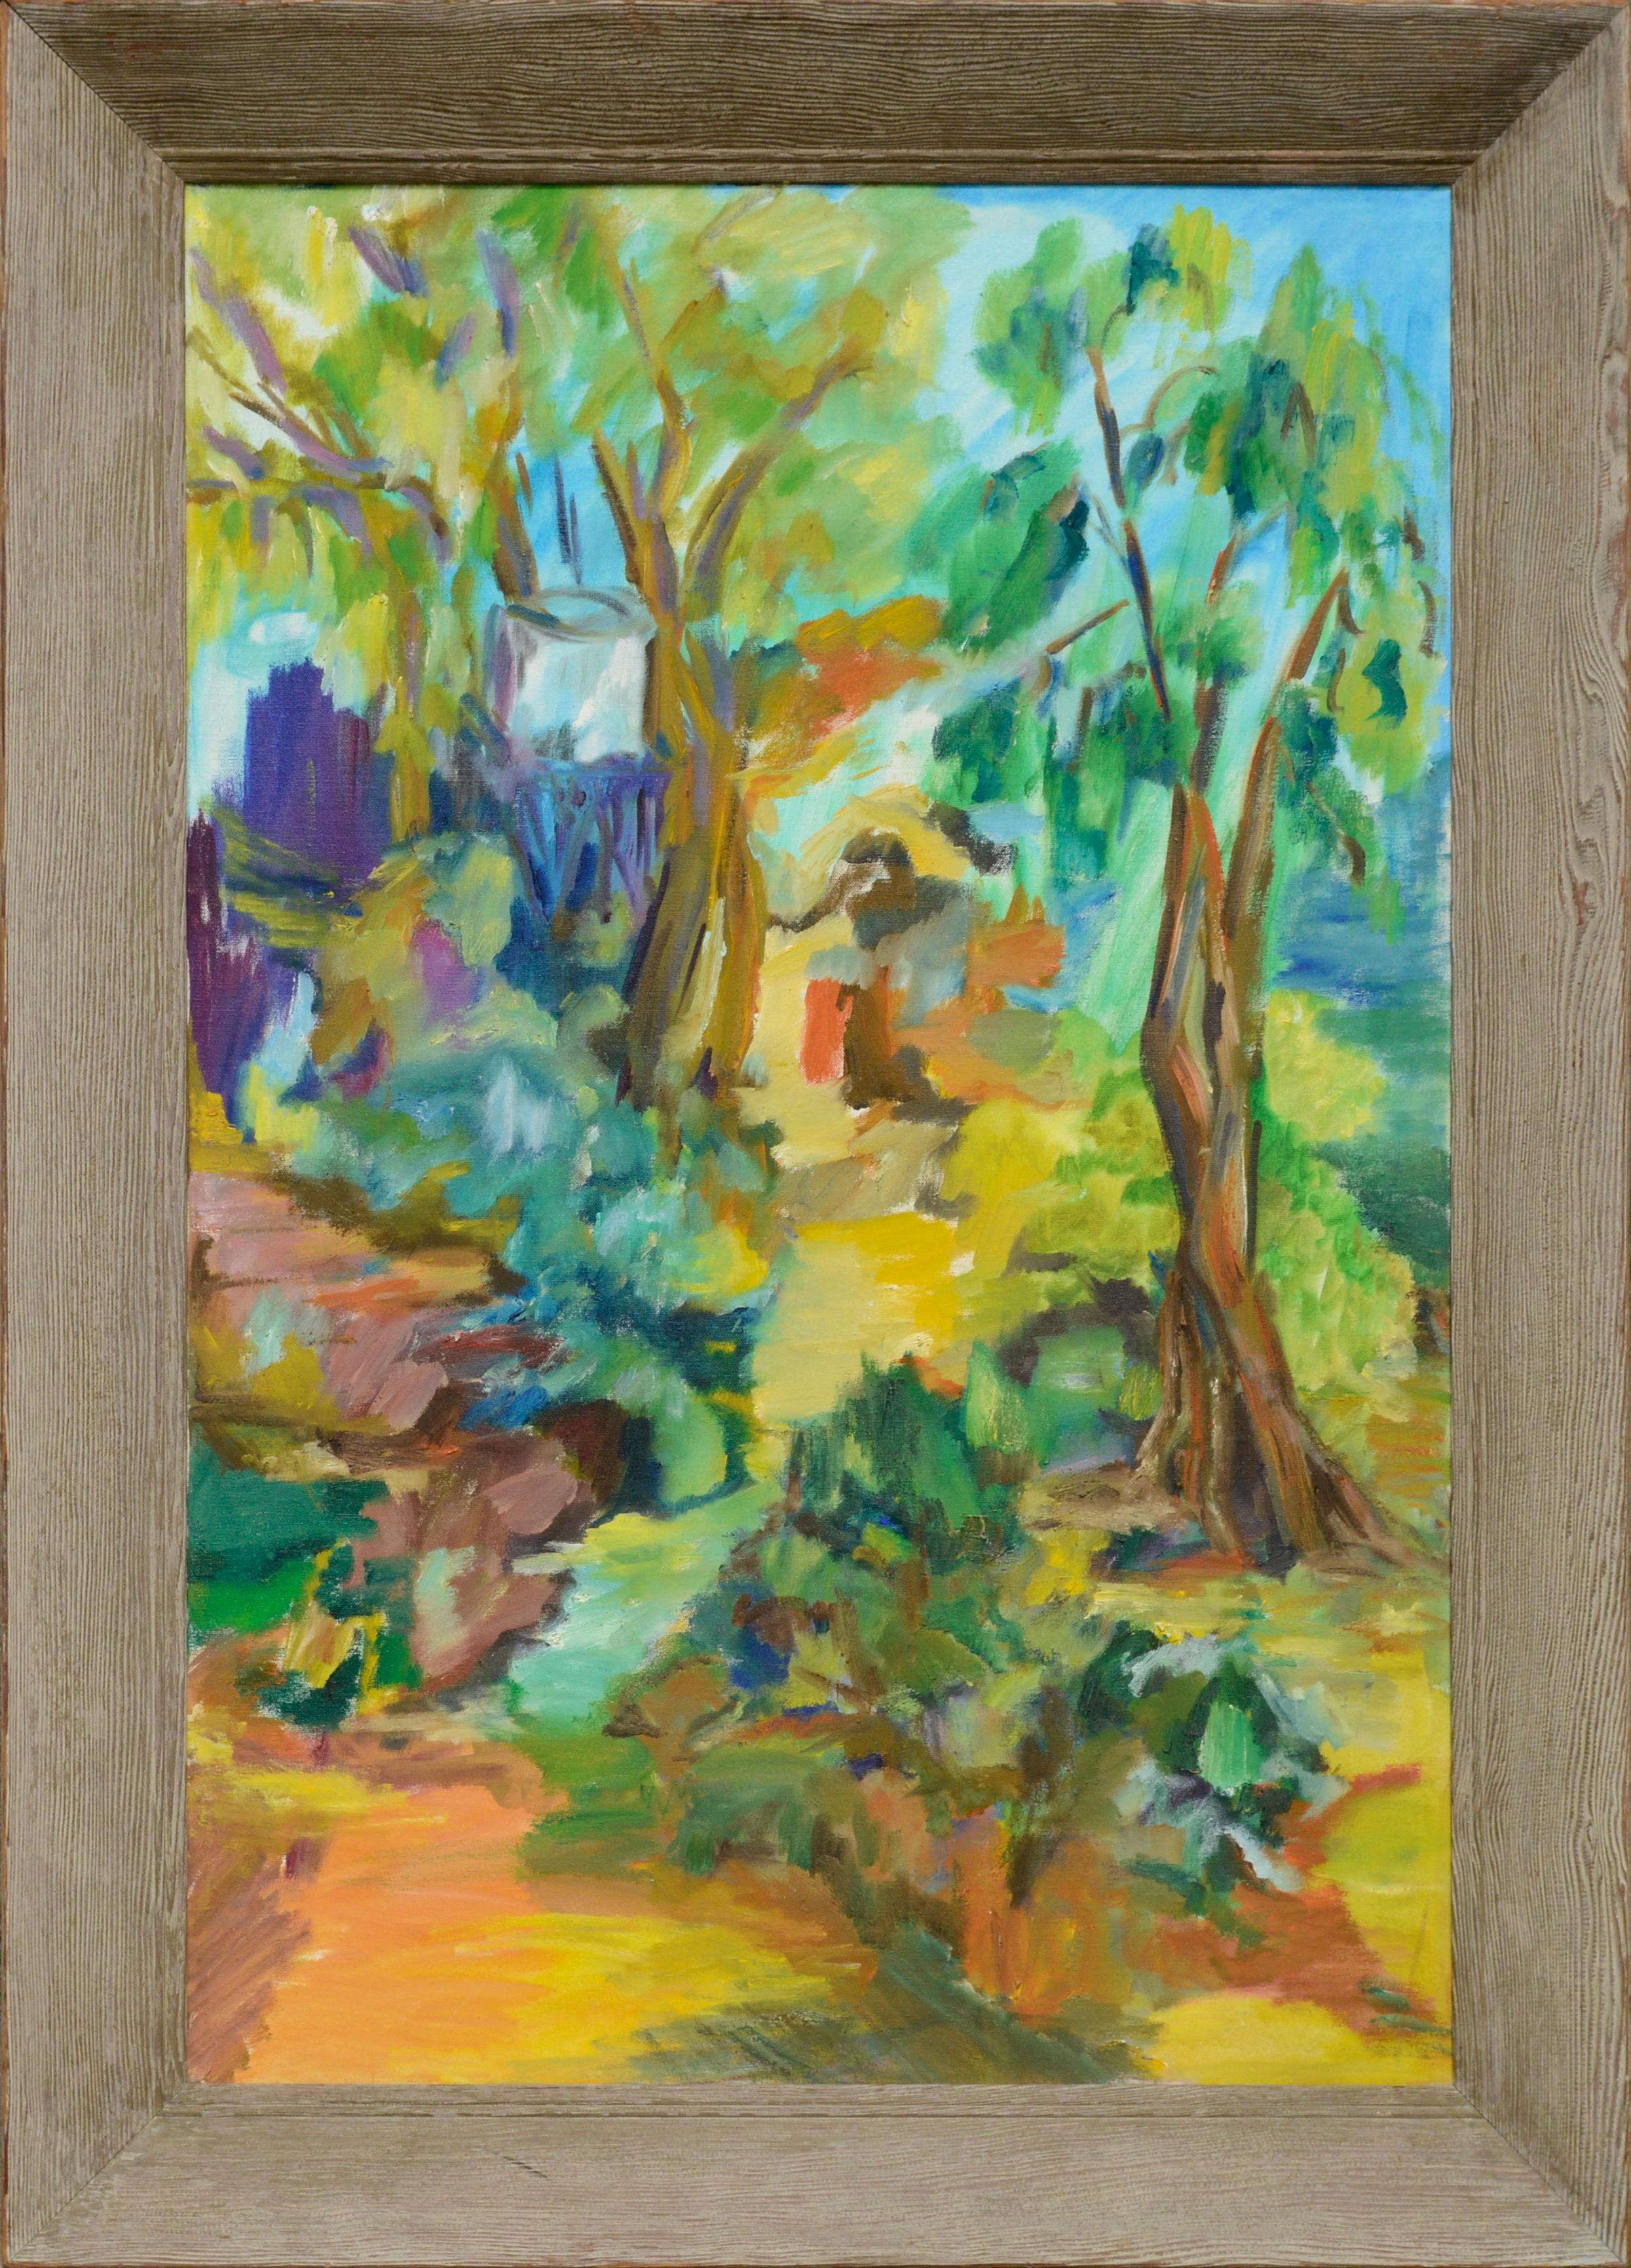 Path Through the Trees - Colorful Abstracted Landscape